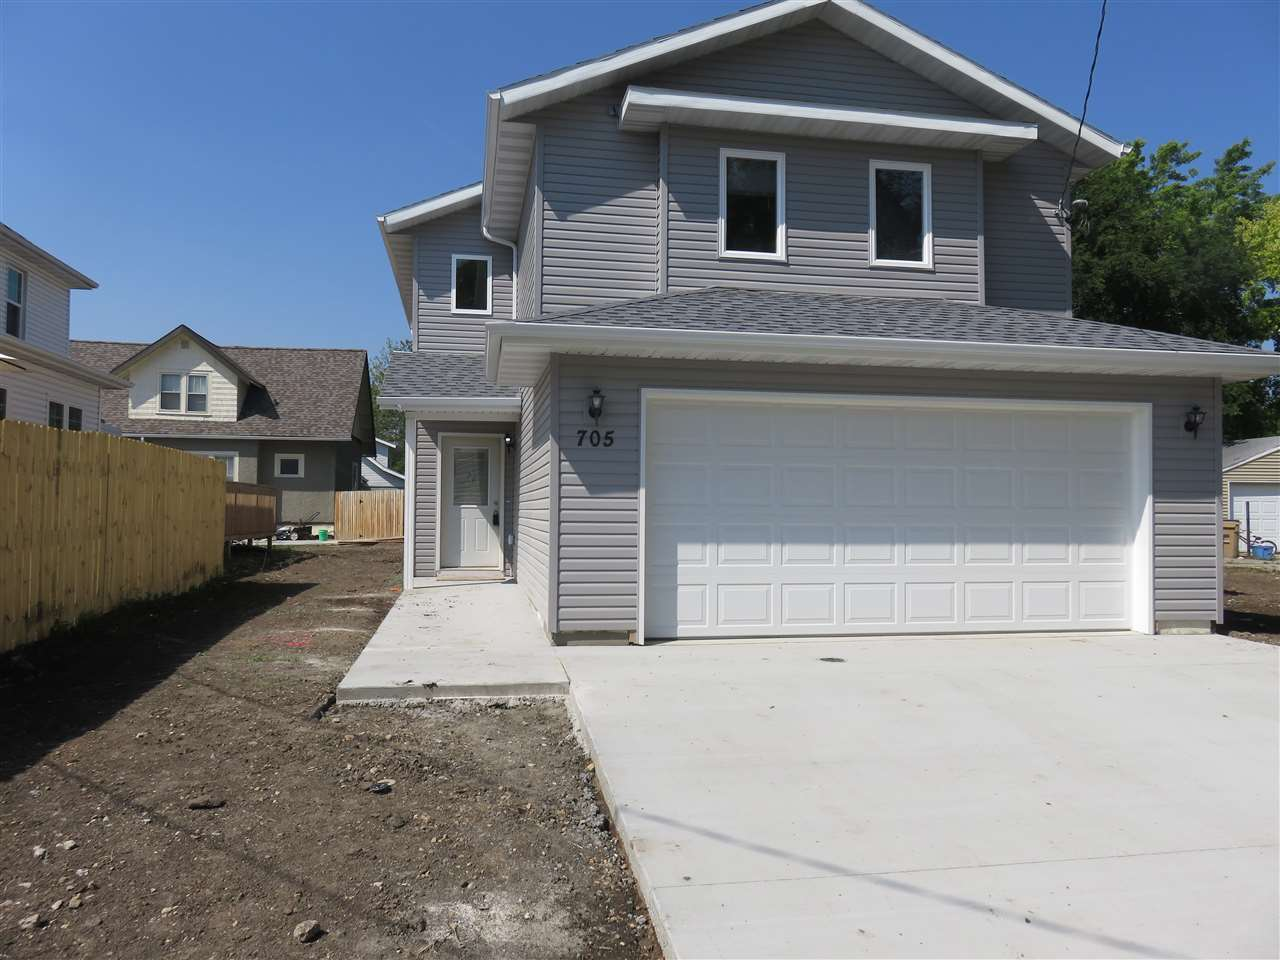 705 8TH ST NW, Minot, ND 58703